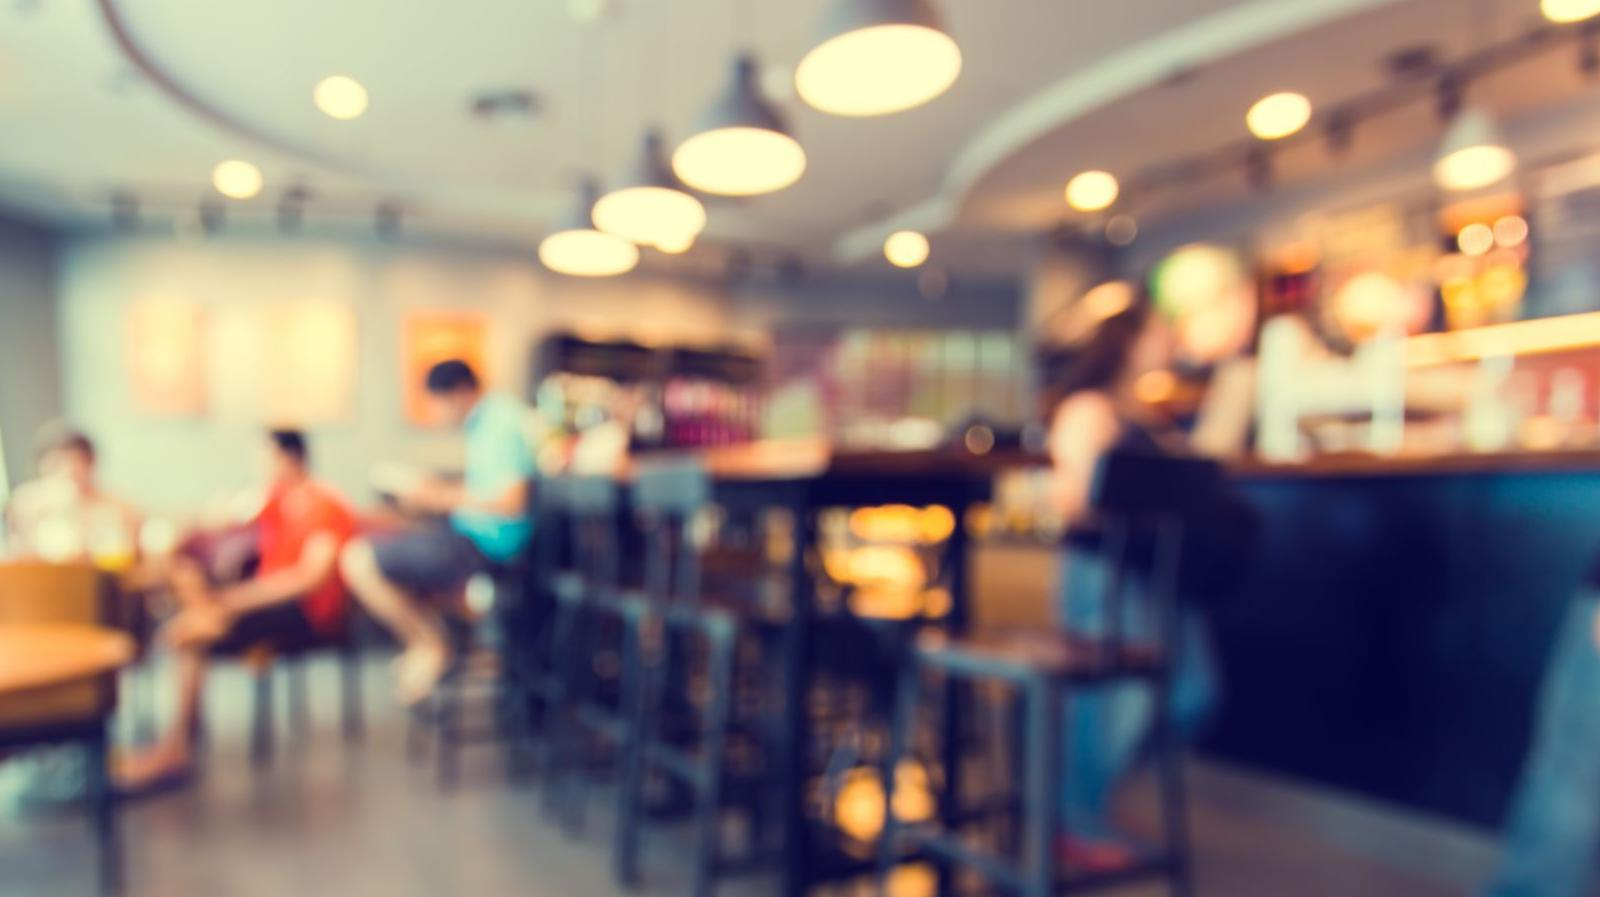 CEDAR CREEK - stock photo of people seated in a cafe